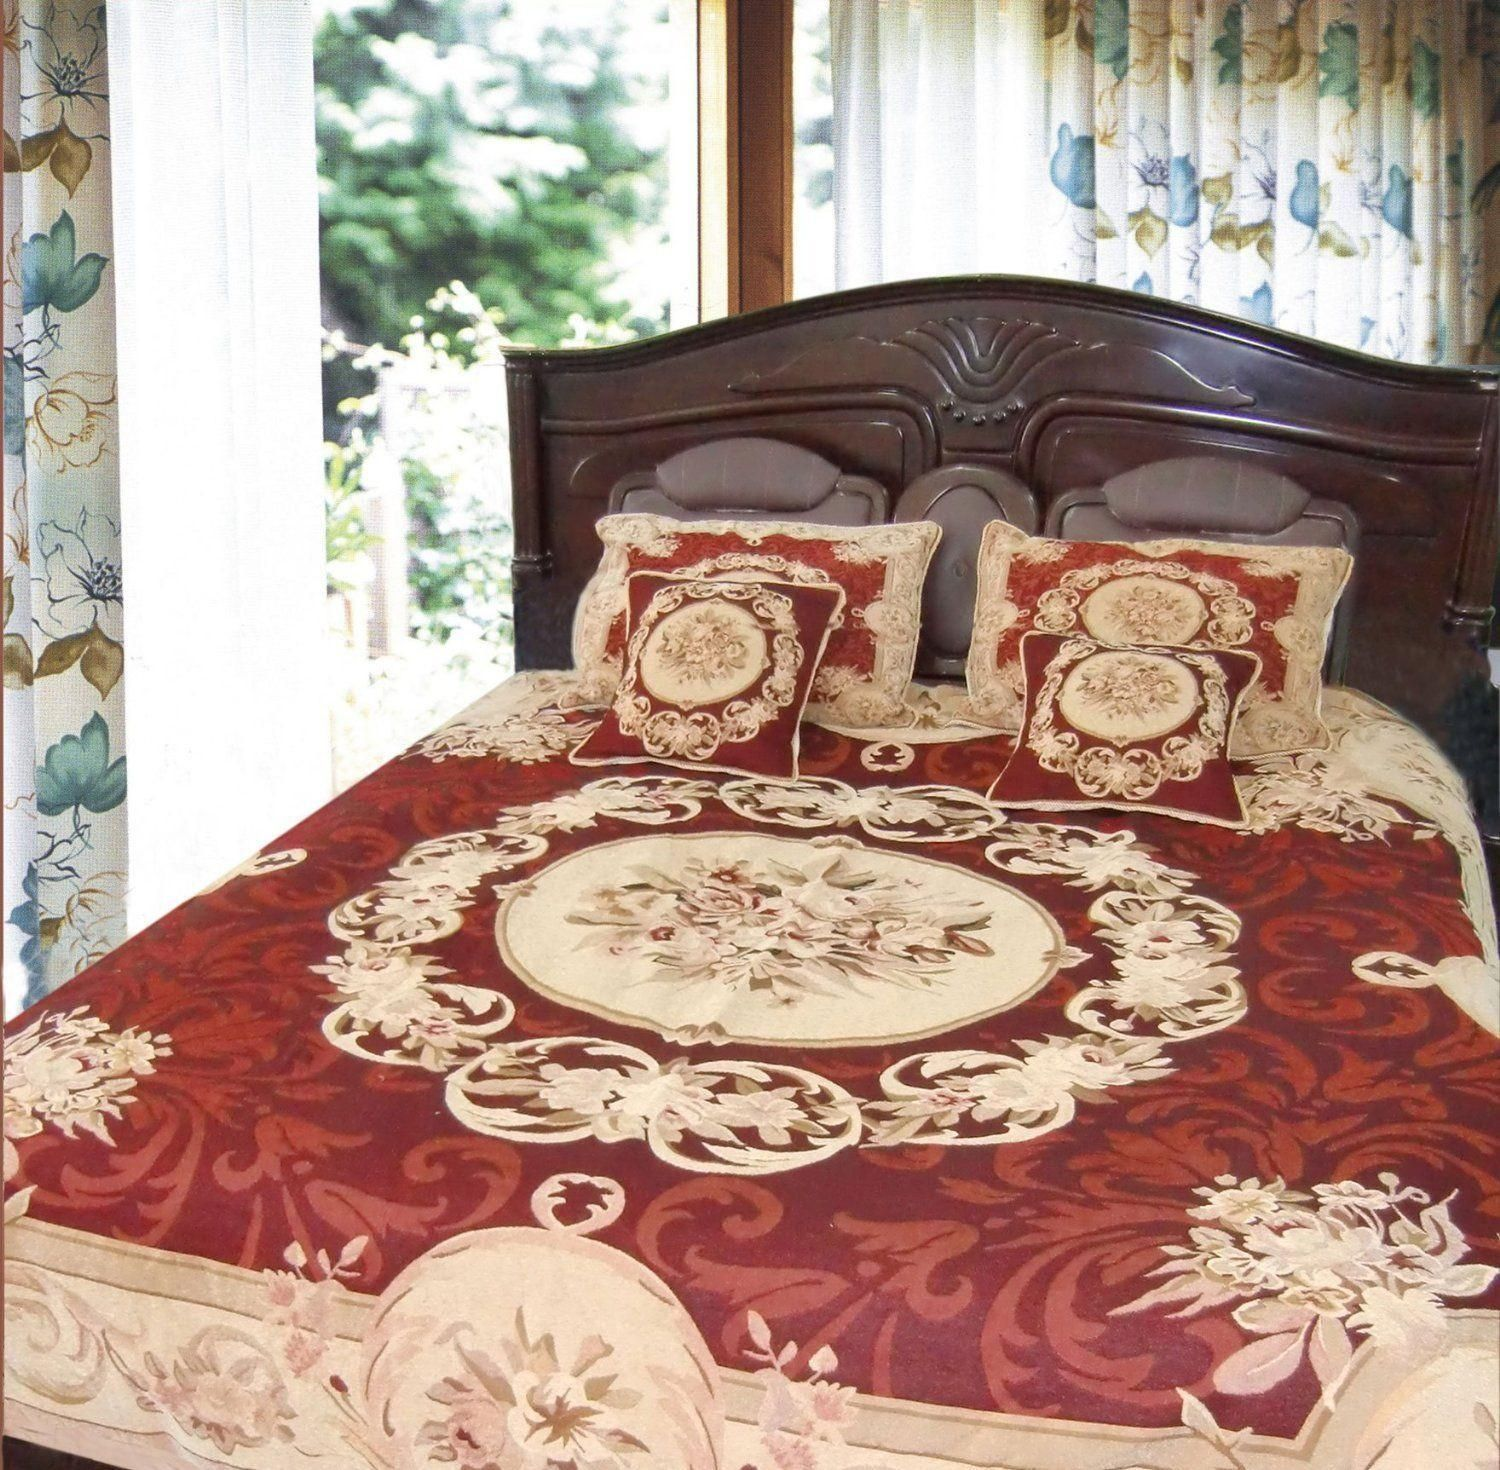 DaDa Bedding Elegant Chenille Woven Tapestry Floral Medallion Print Bedspread Red Creme Queen - Twin - 3-5 Pieces (12JPG)